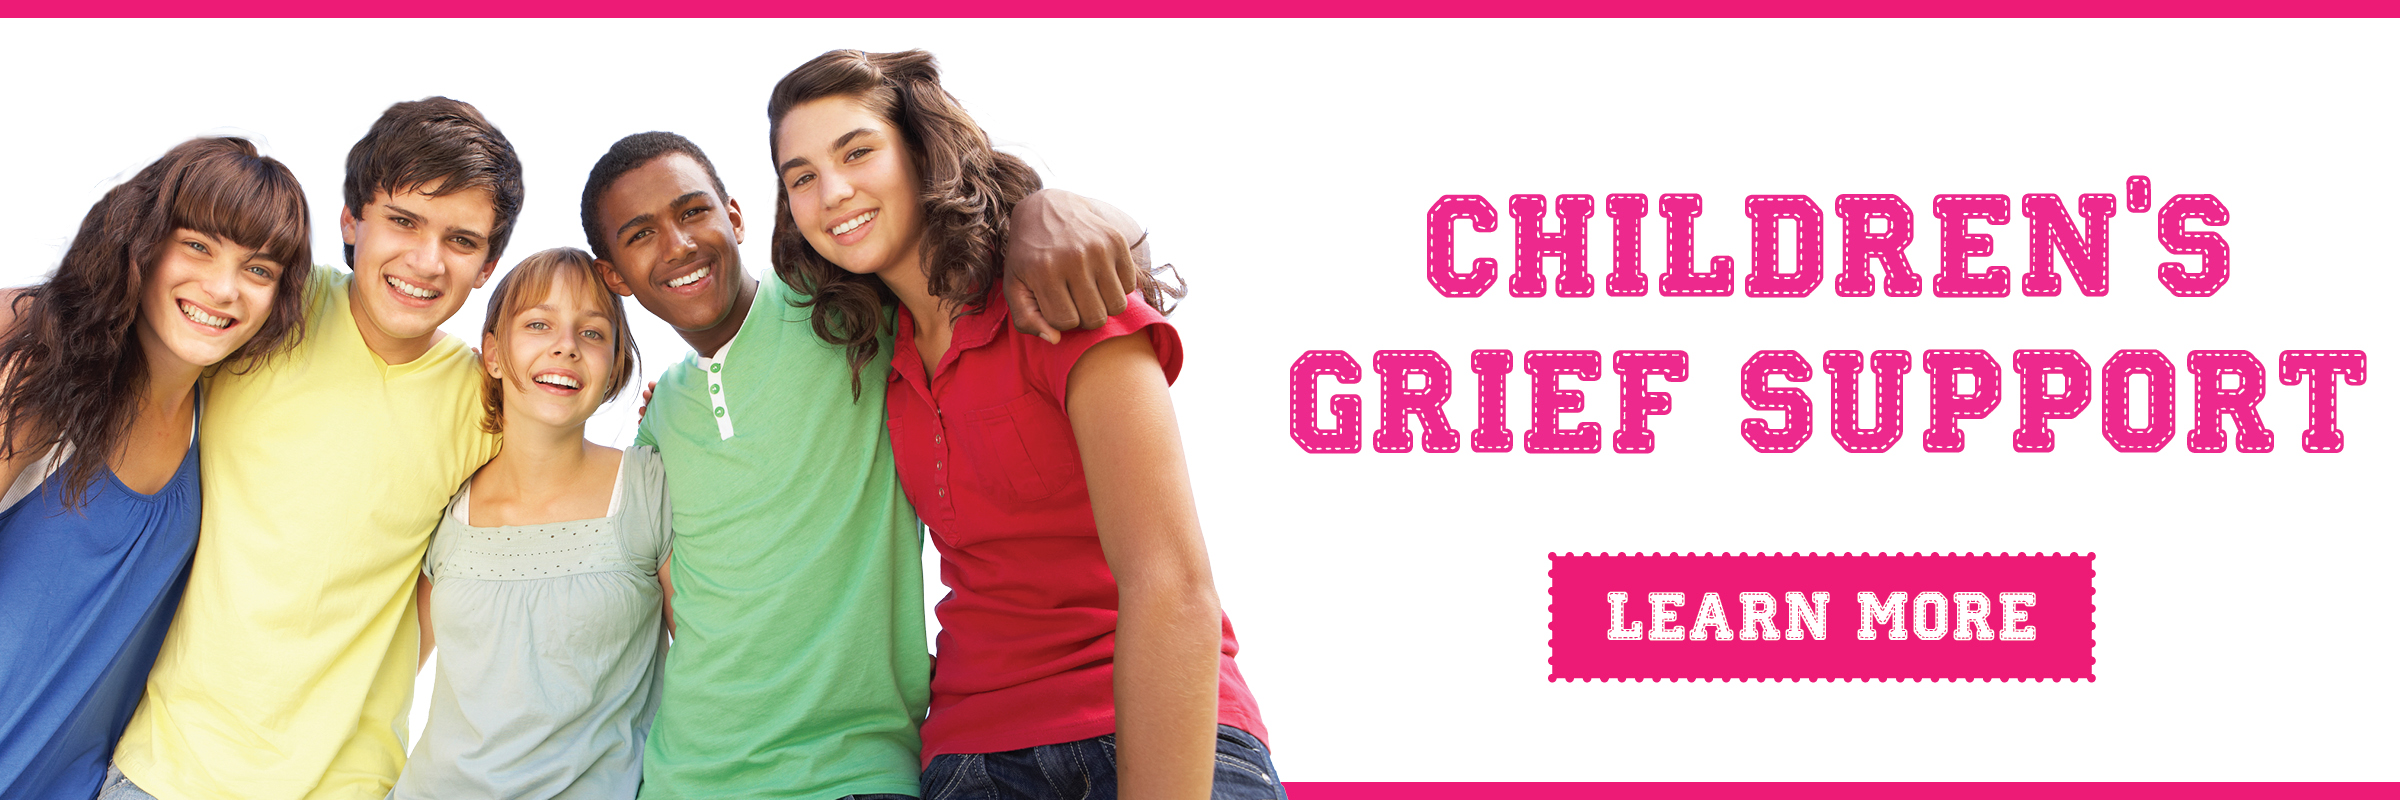 Childrens Grief Groups1